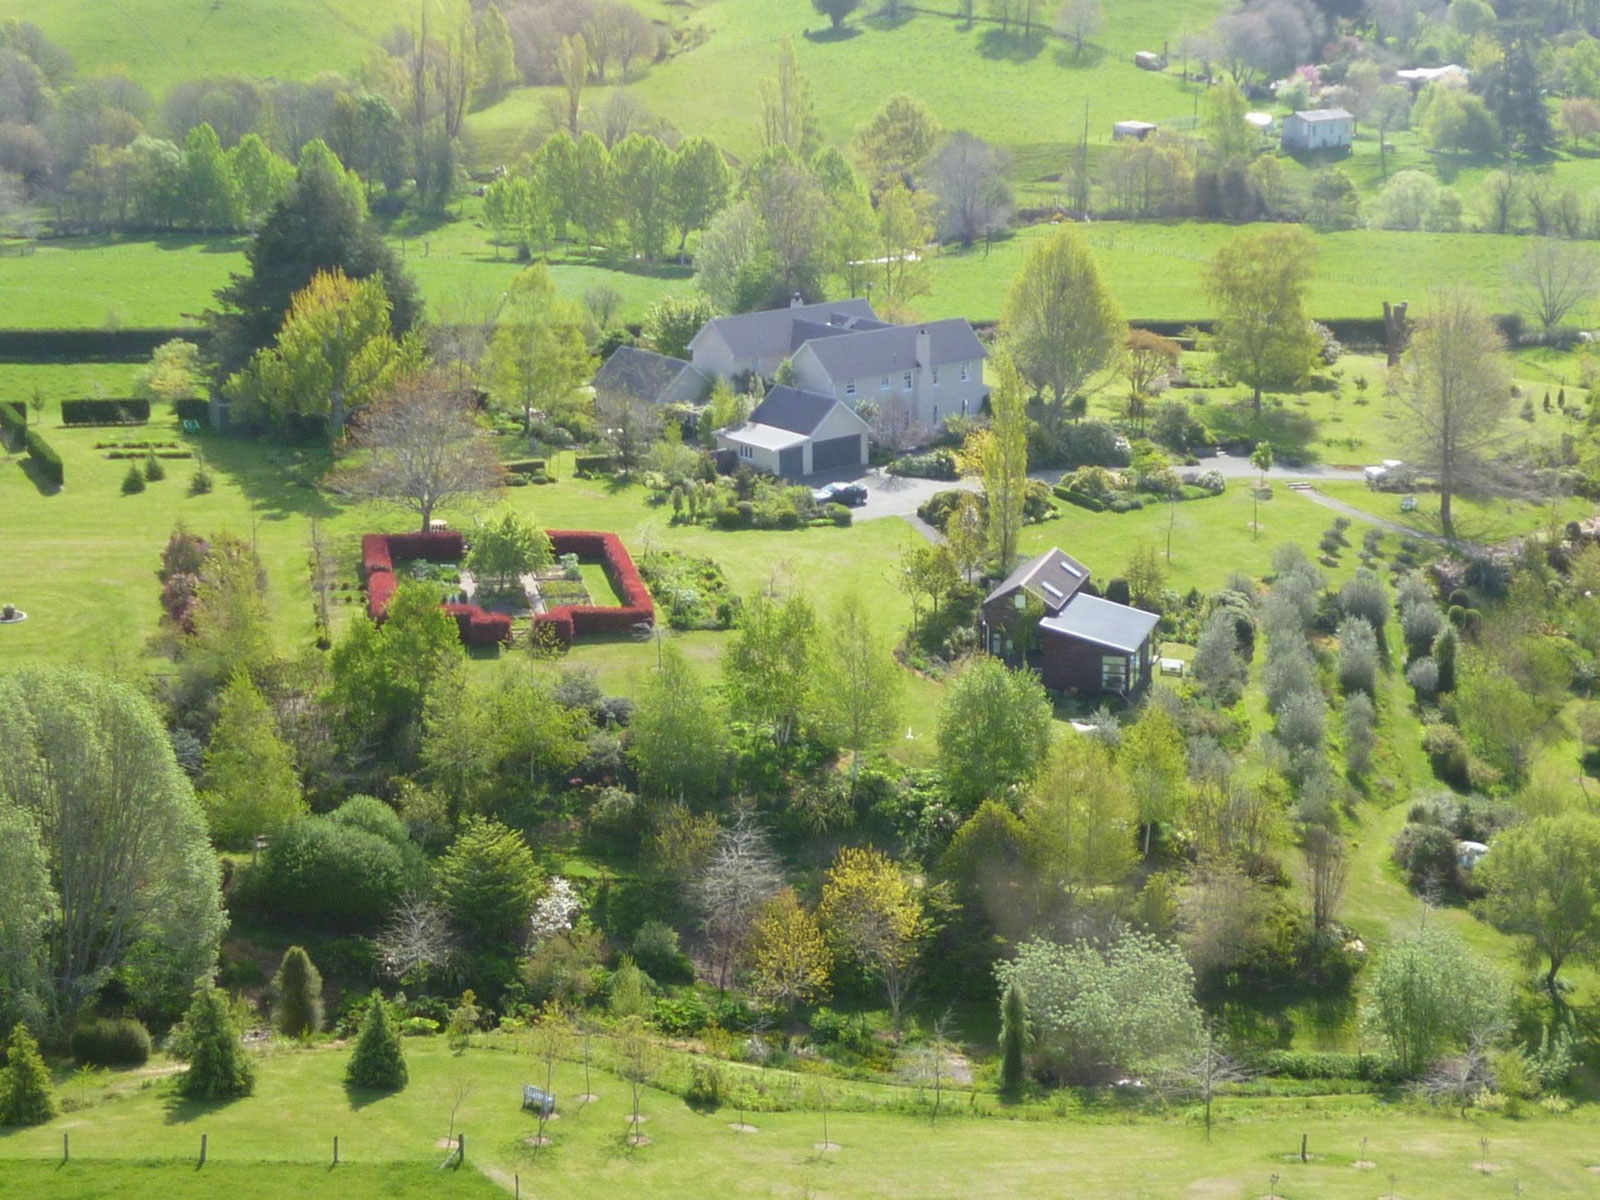 Aerial view of Edenhouse - pic courtesy Edenhouse